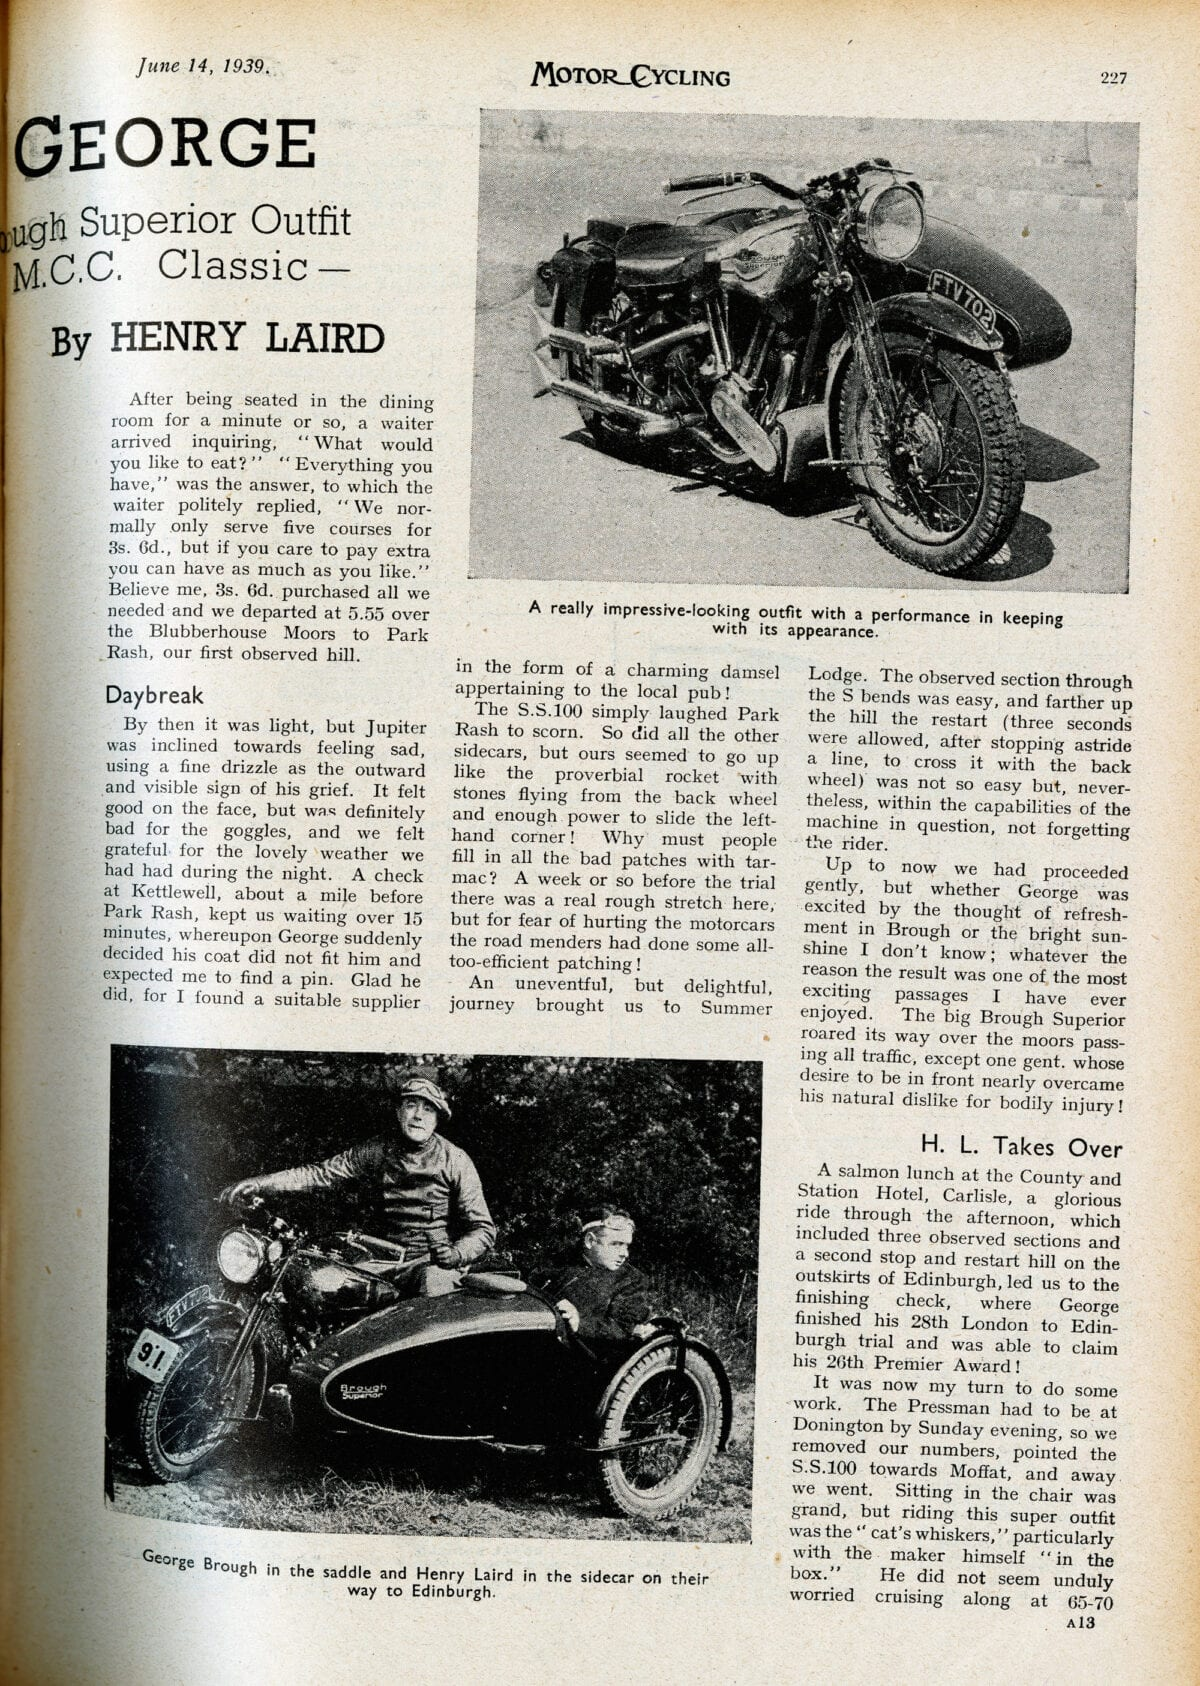 MotorCycling-Brough-article2